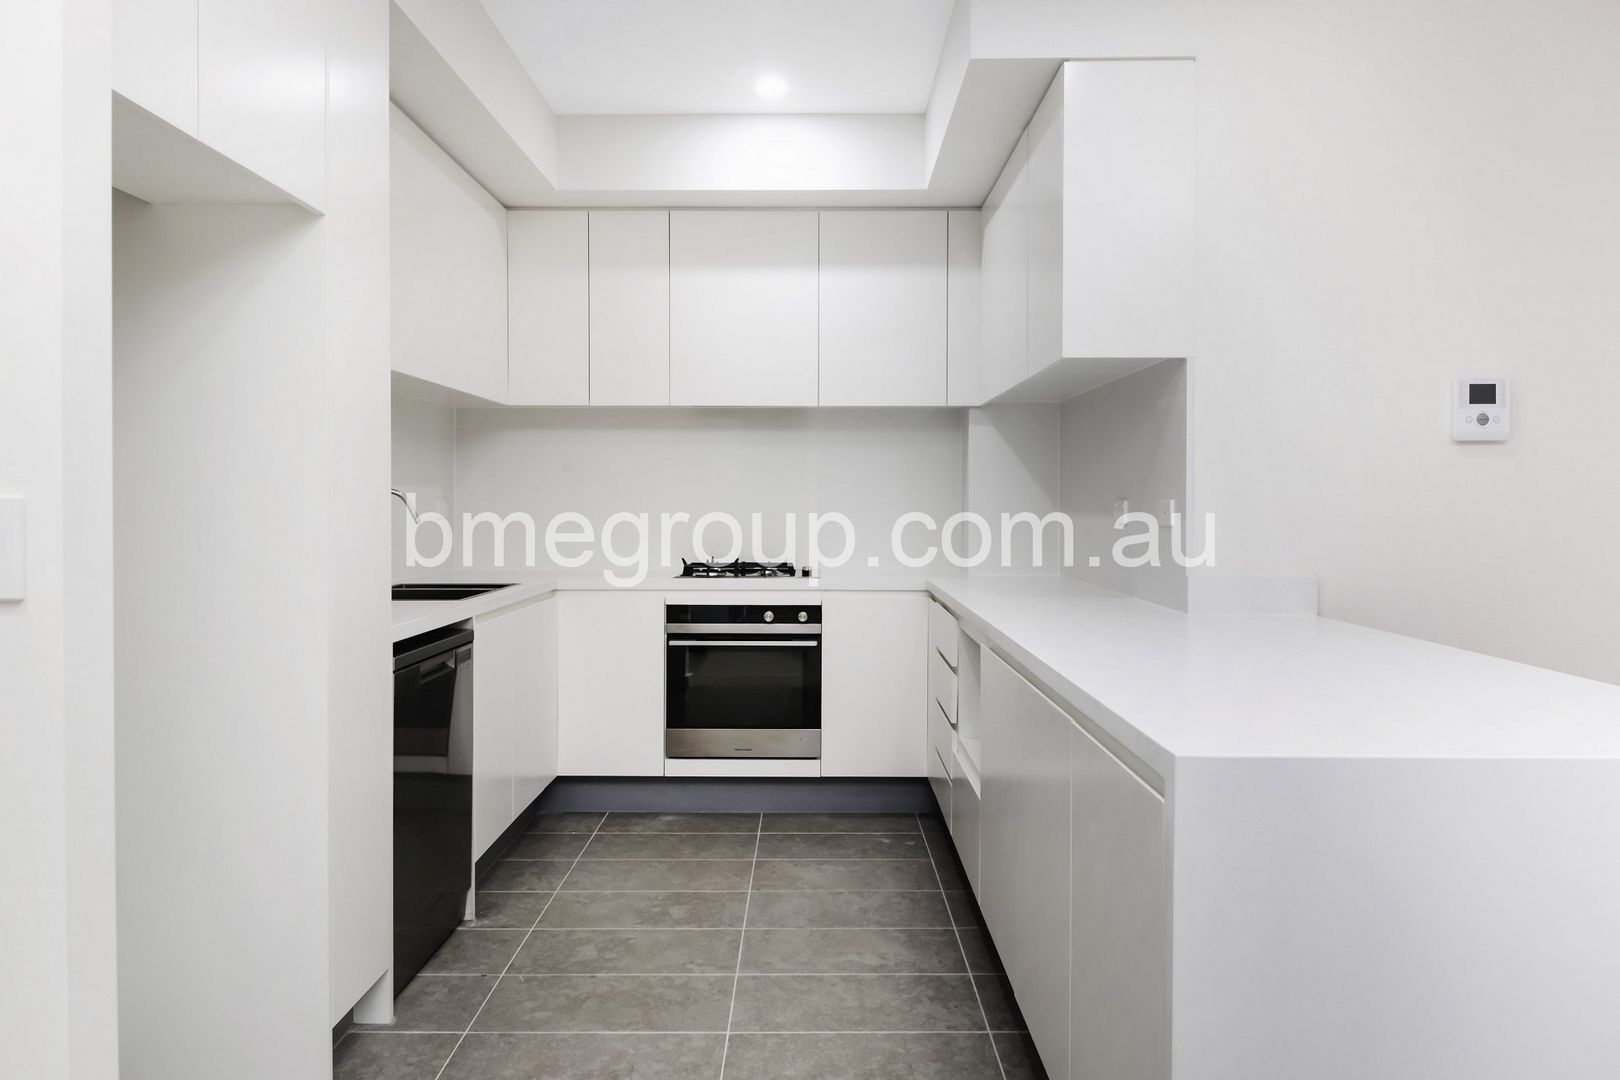 Unit 110/46 Pinnacle St, Miranda NSW 2228, Image 2